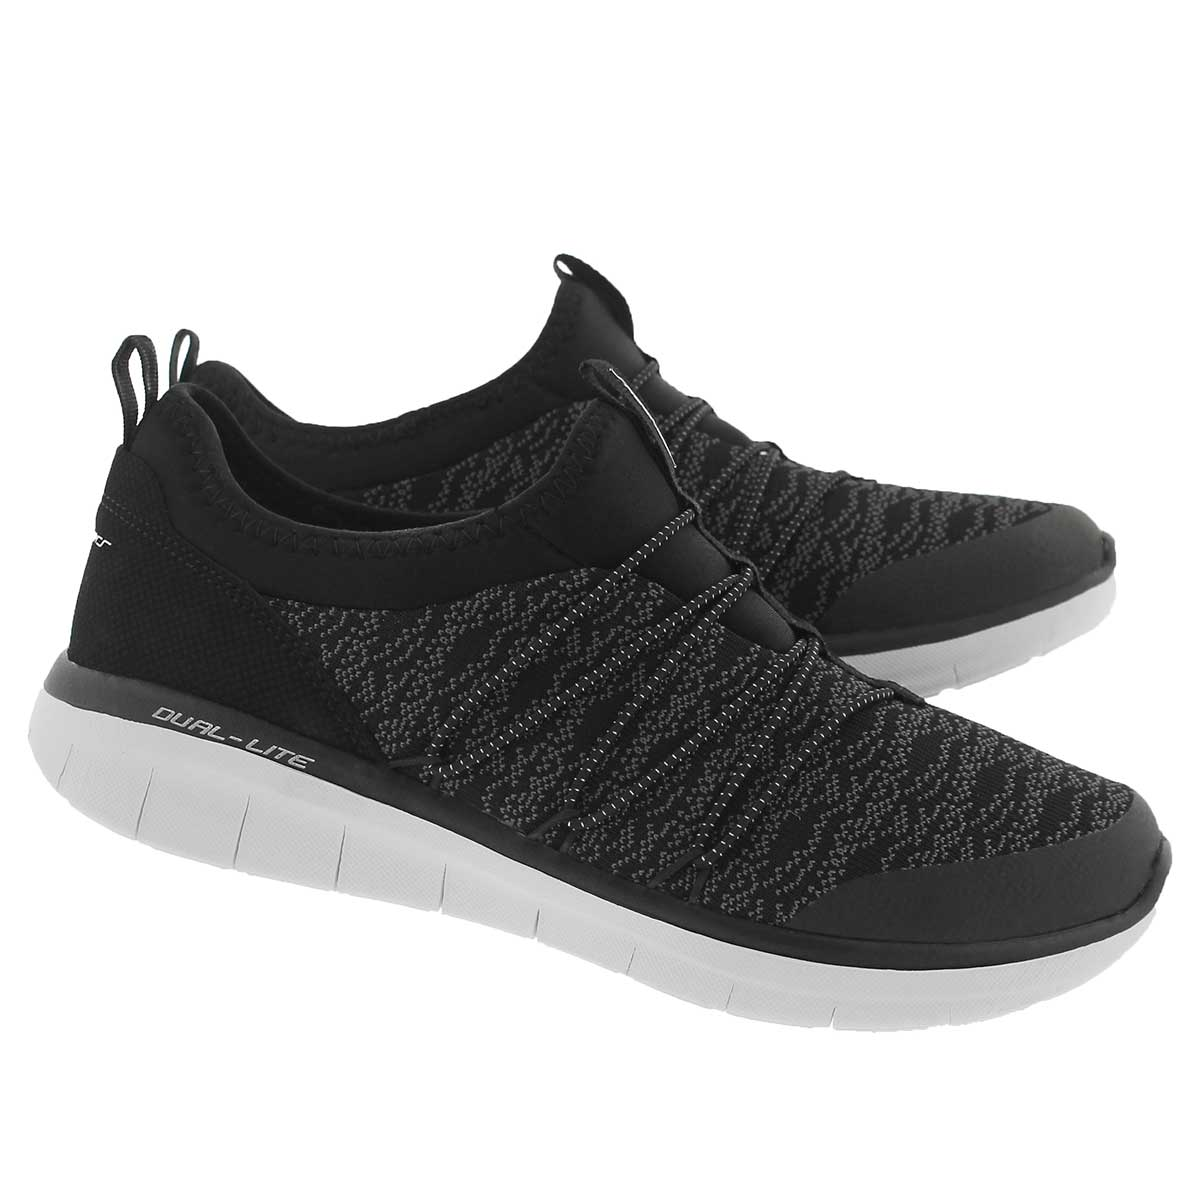 Lds Synergy 2.0 black slip on sneaker